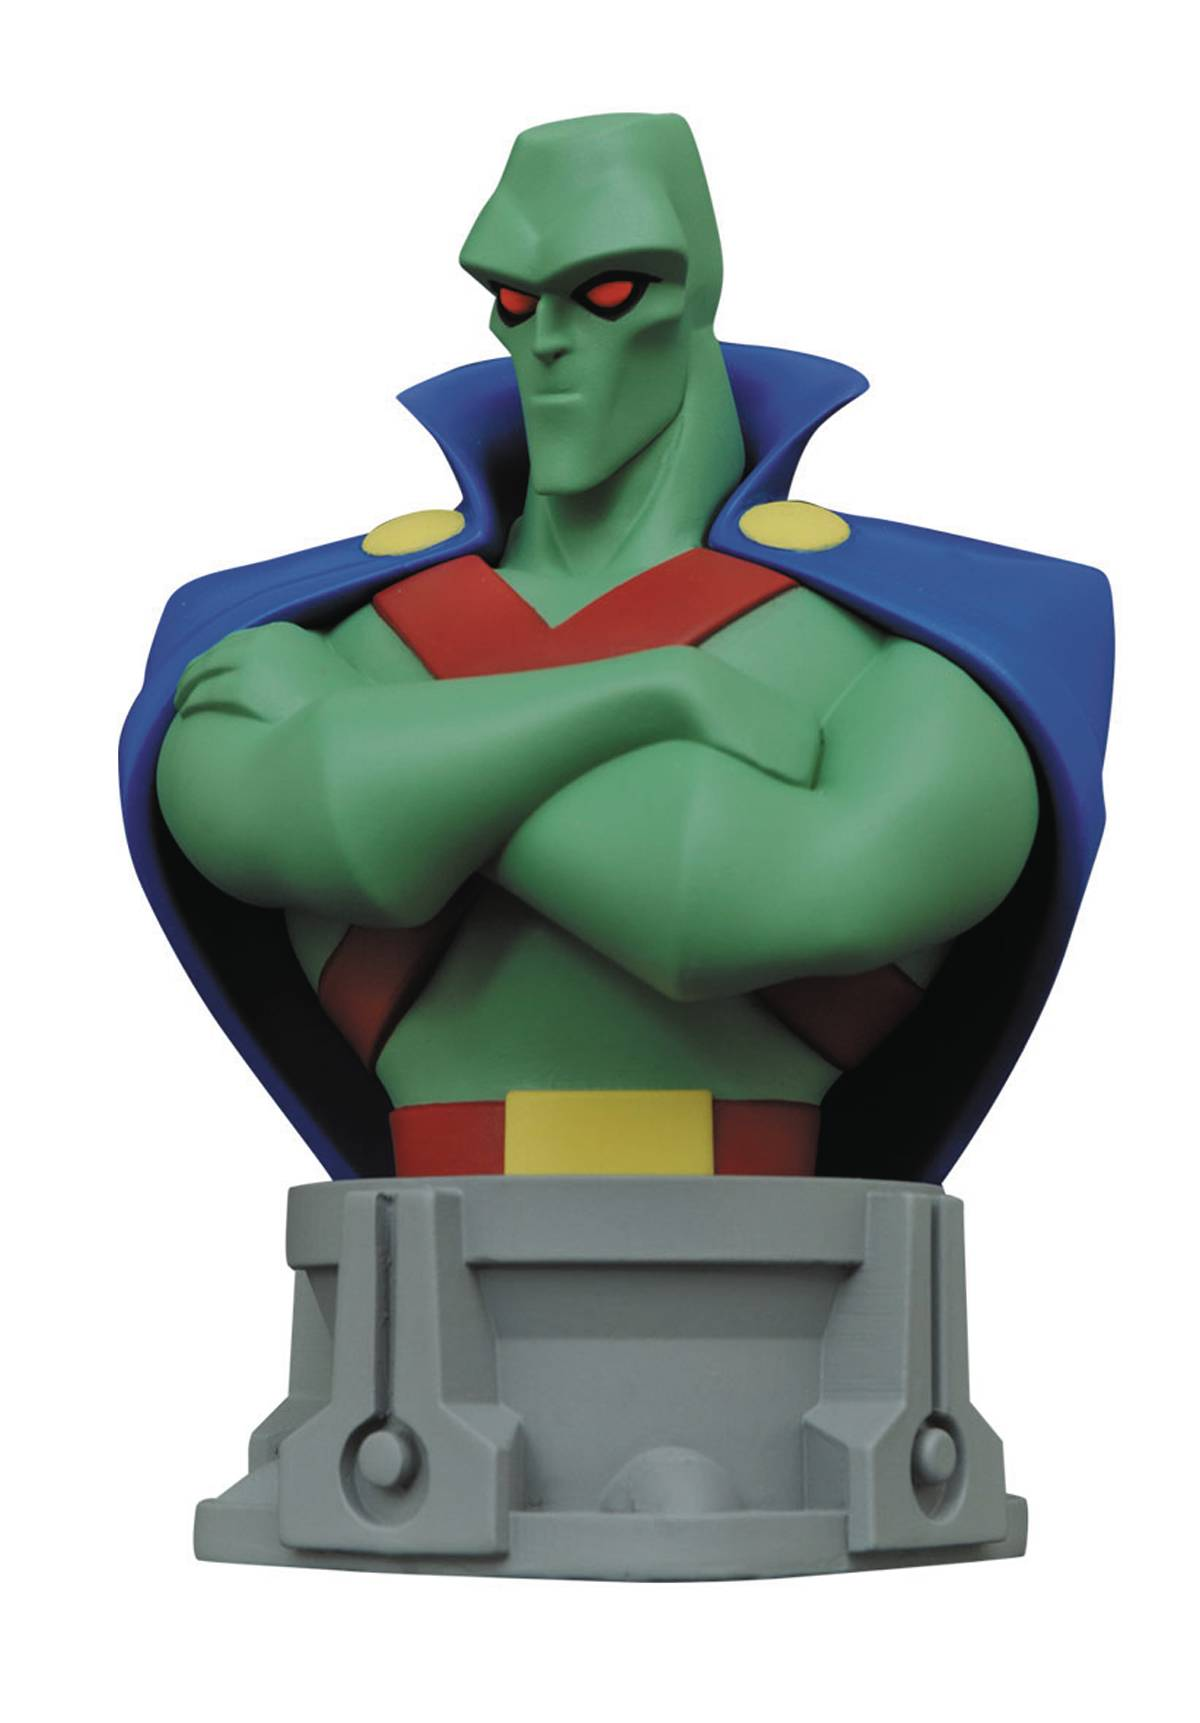 Diamond DC Comics JL Animated Series Martian Manhunter Bust